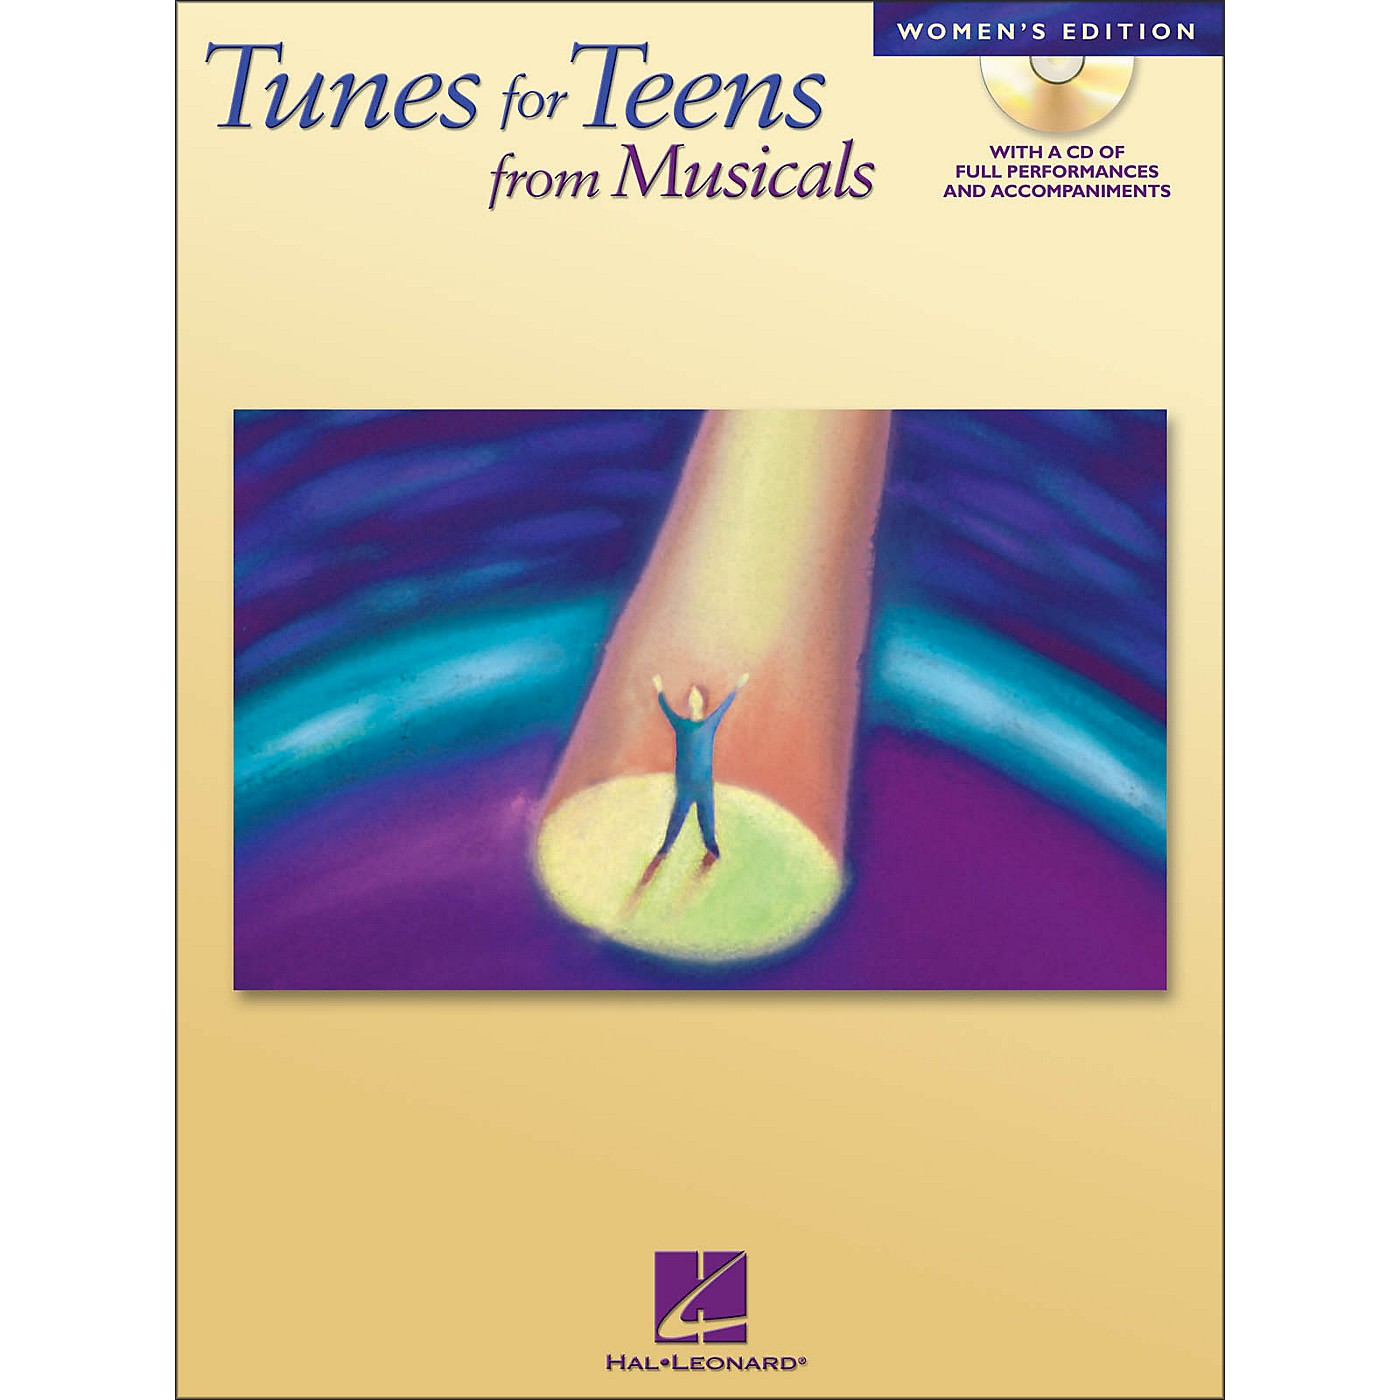 Hal Leonard Tunes for Teens From Musicals - Womens's Edition Book/CD thumbnail